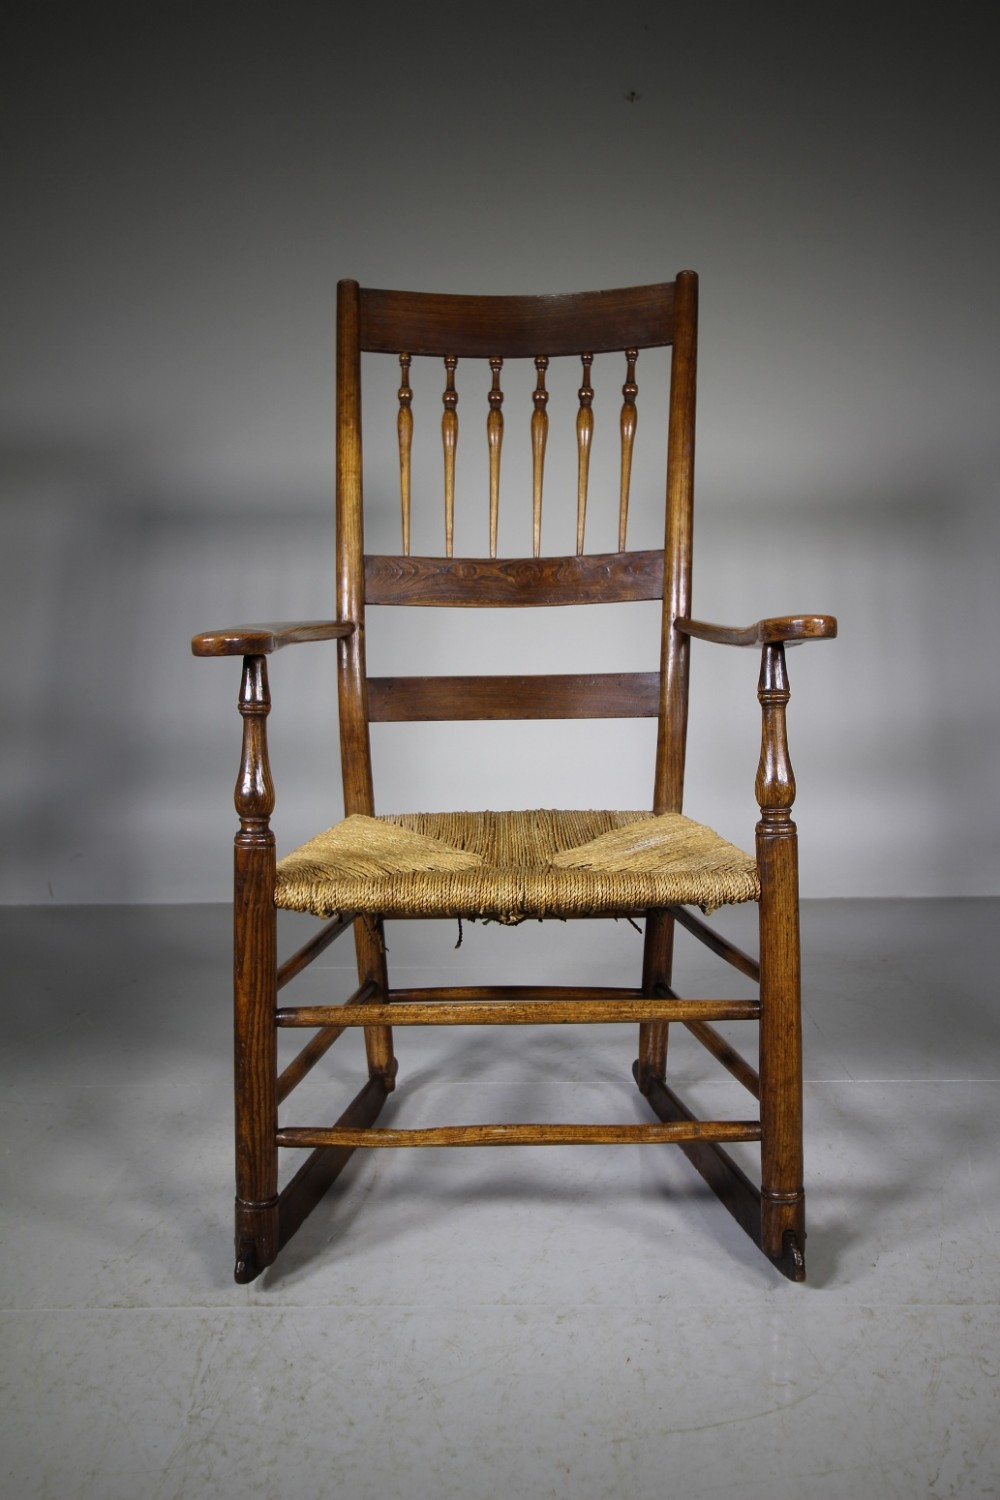 herefordshire antique spindle back armchair very clissett